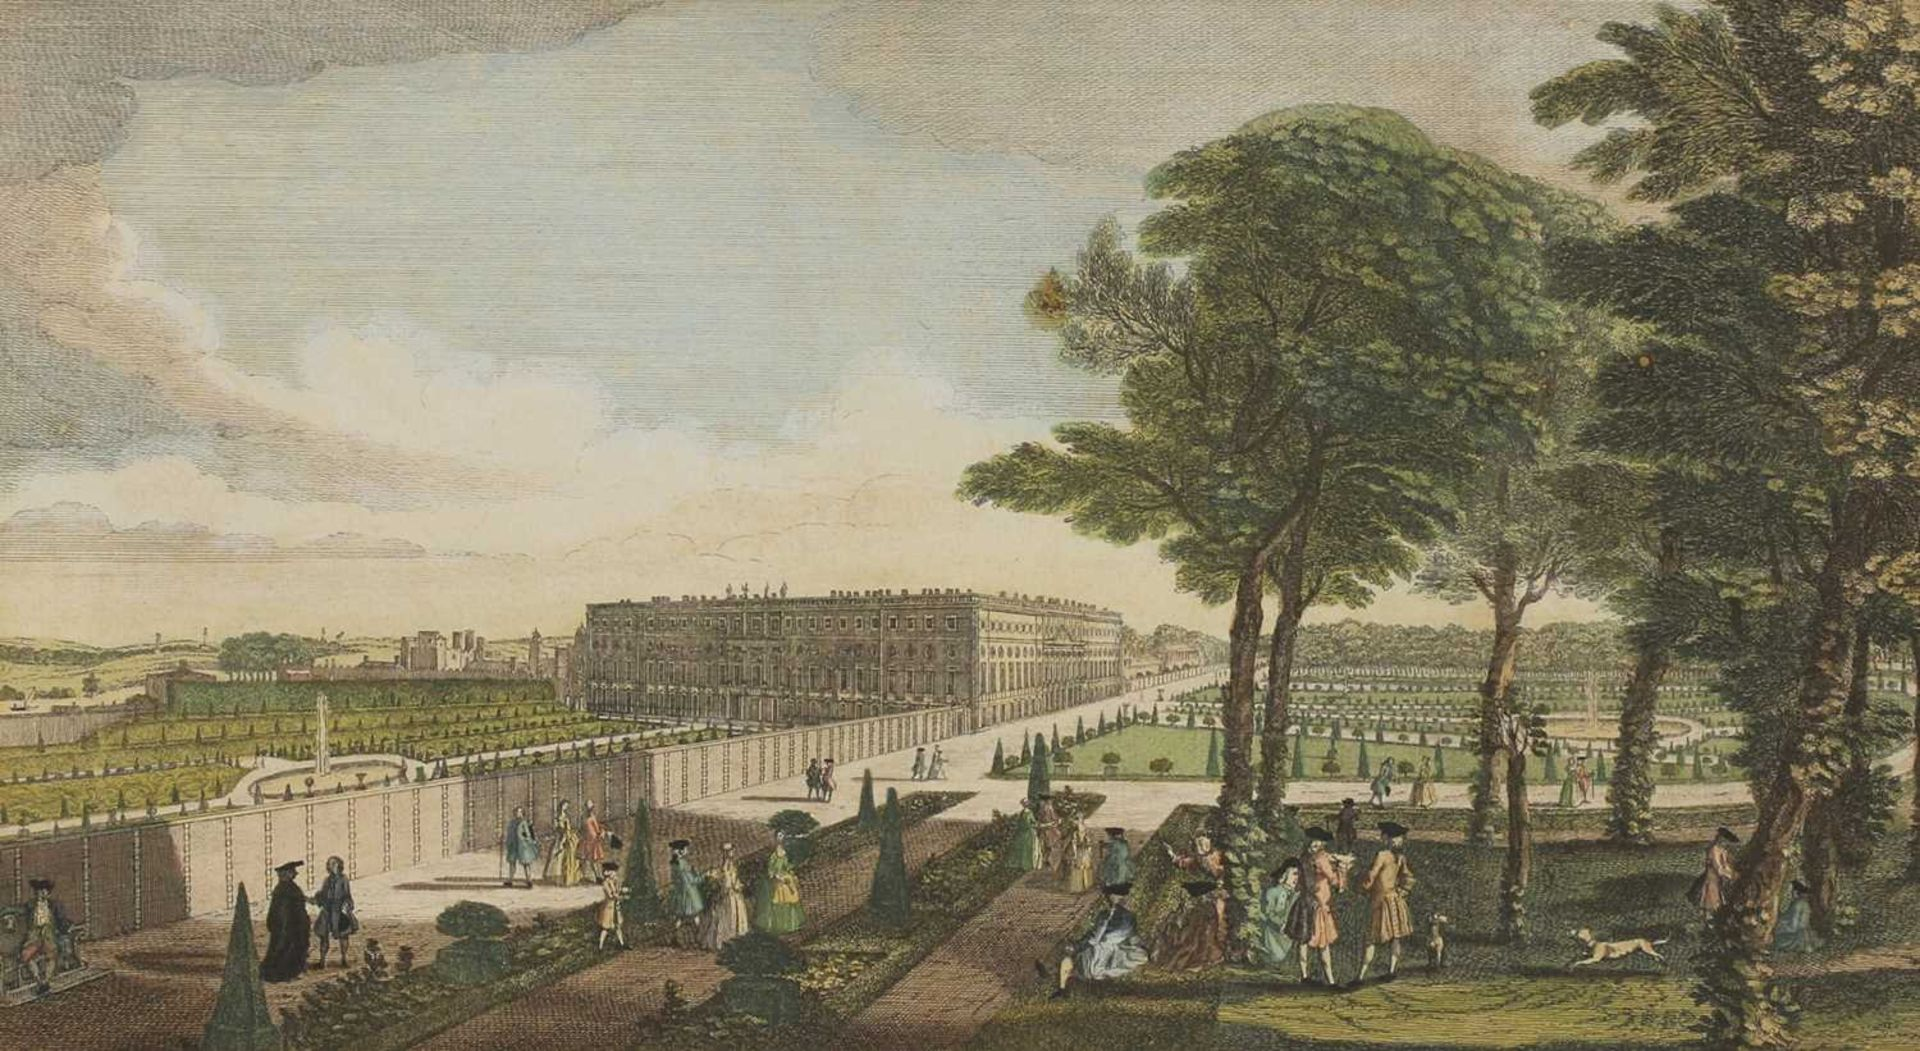 Jacques Rigaud (French, 1680-1754)